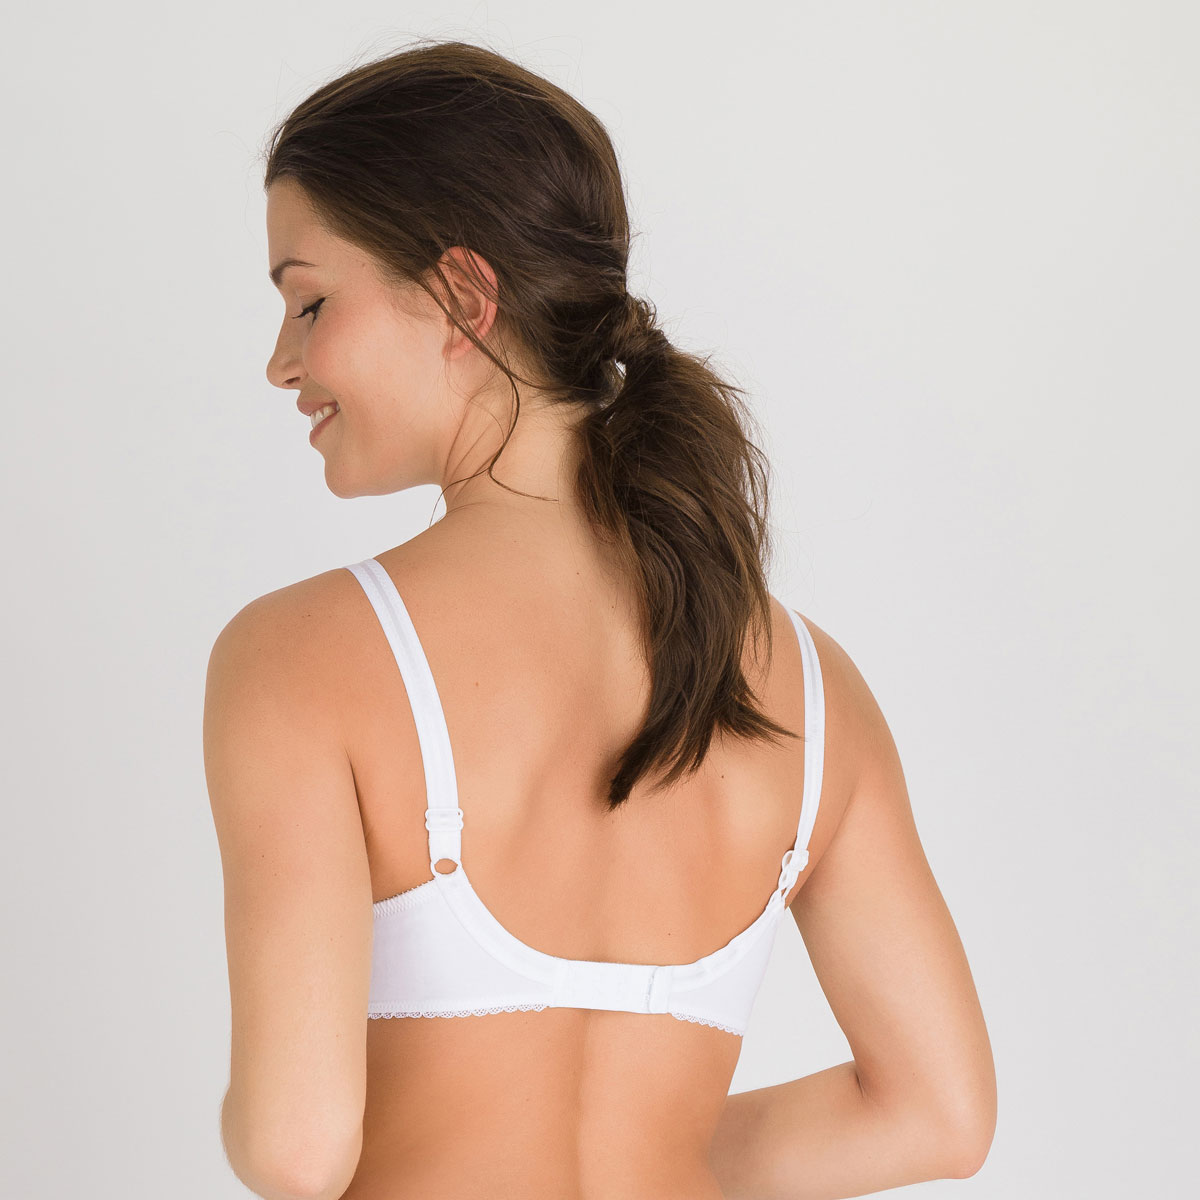 Full Cup Bra in White – Classic Cotton Support-PLAYTEX